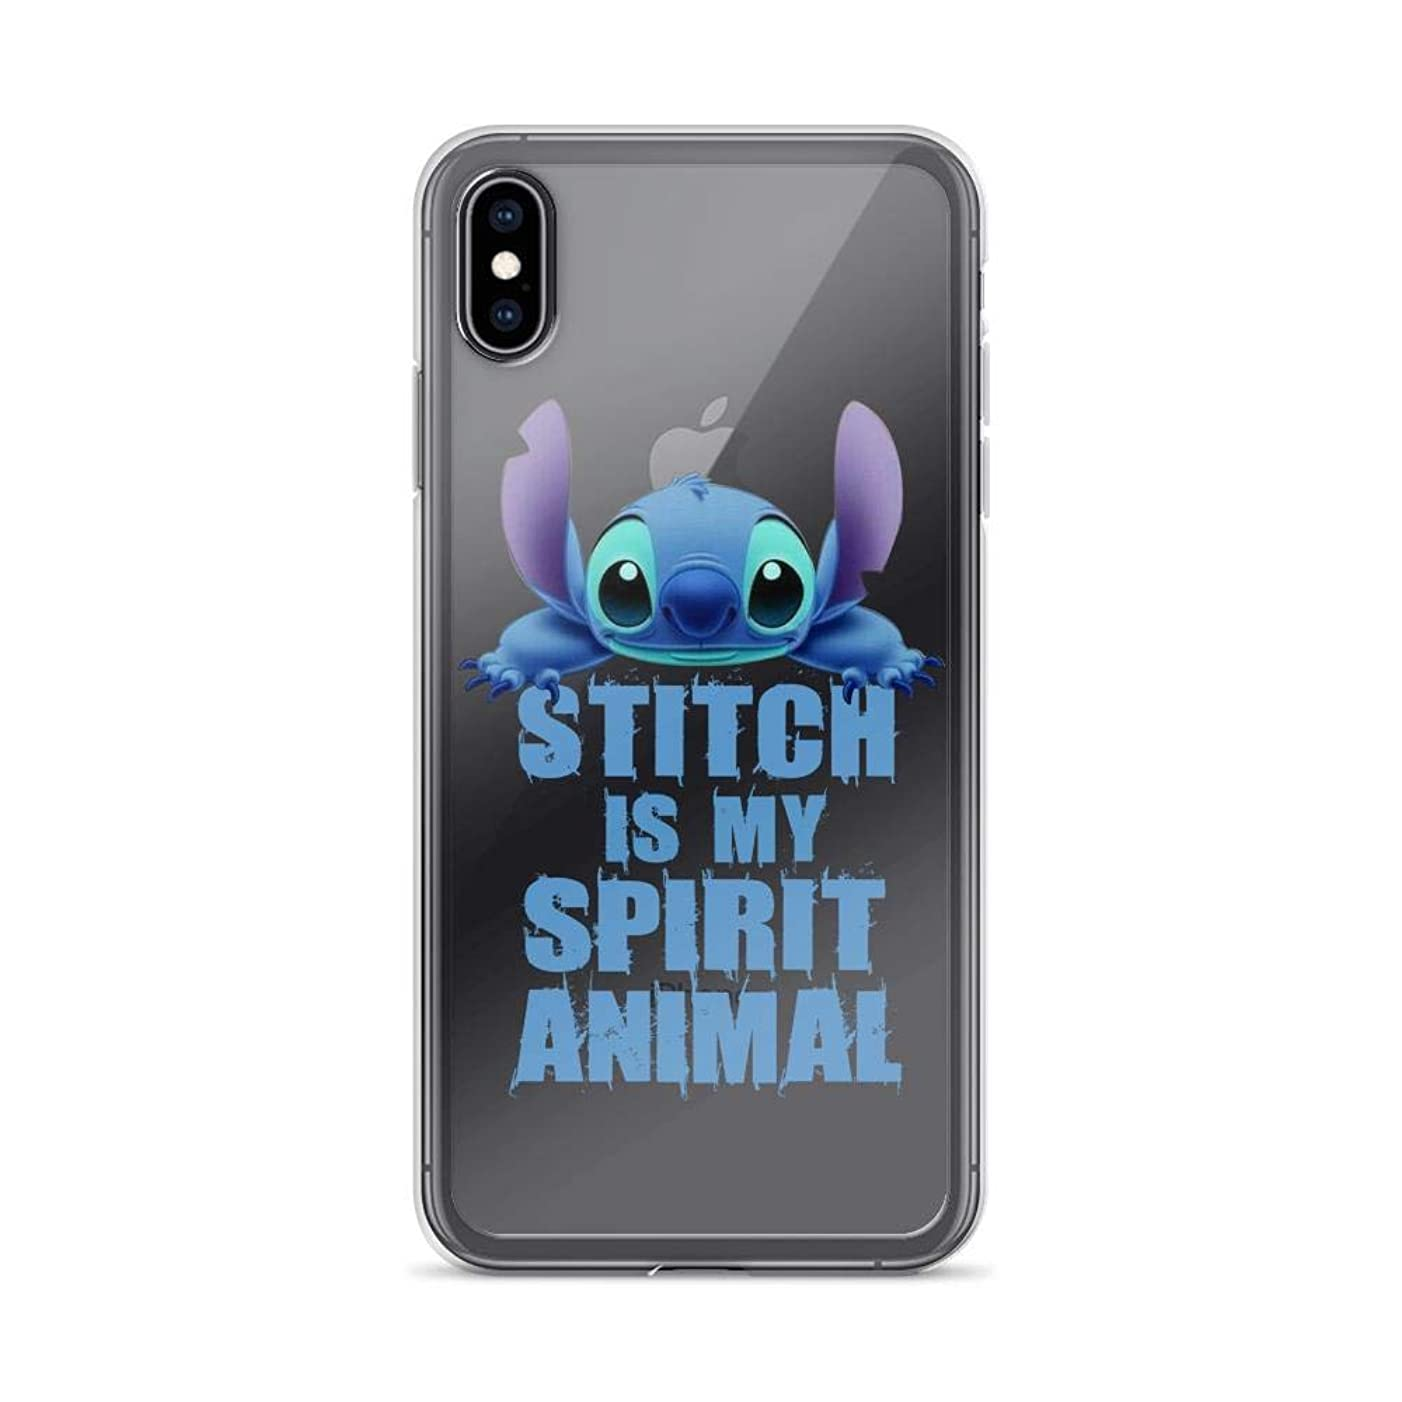 iPhone 6/6s Pure Clear Case Cases Cover Stitch is My Spirit Lilo and Stitch TV Cartoon Series Animal Gift